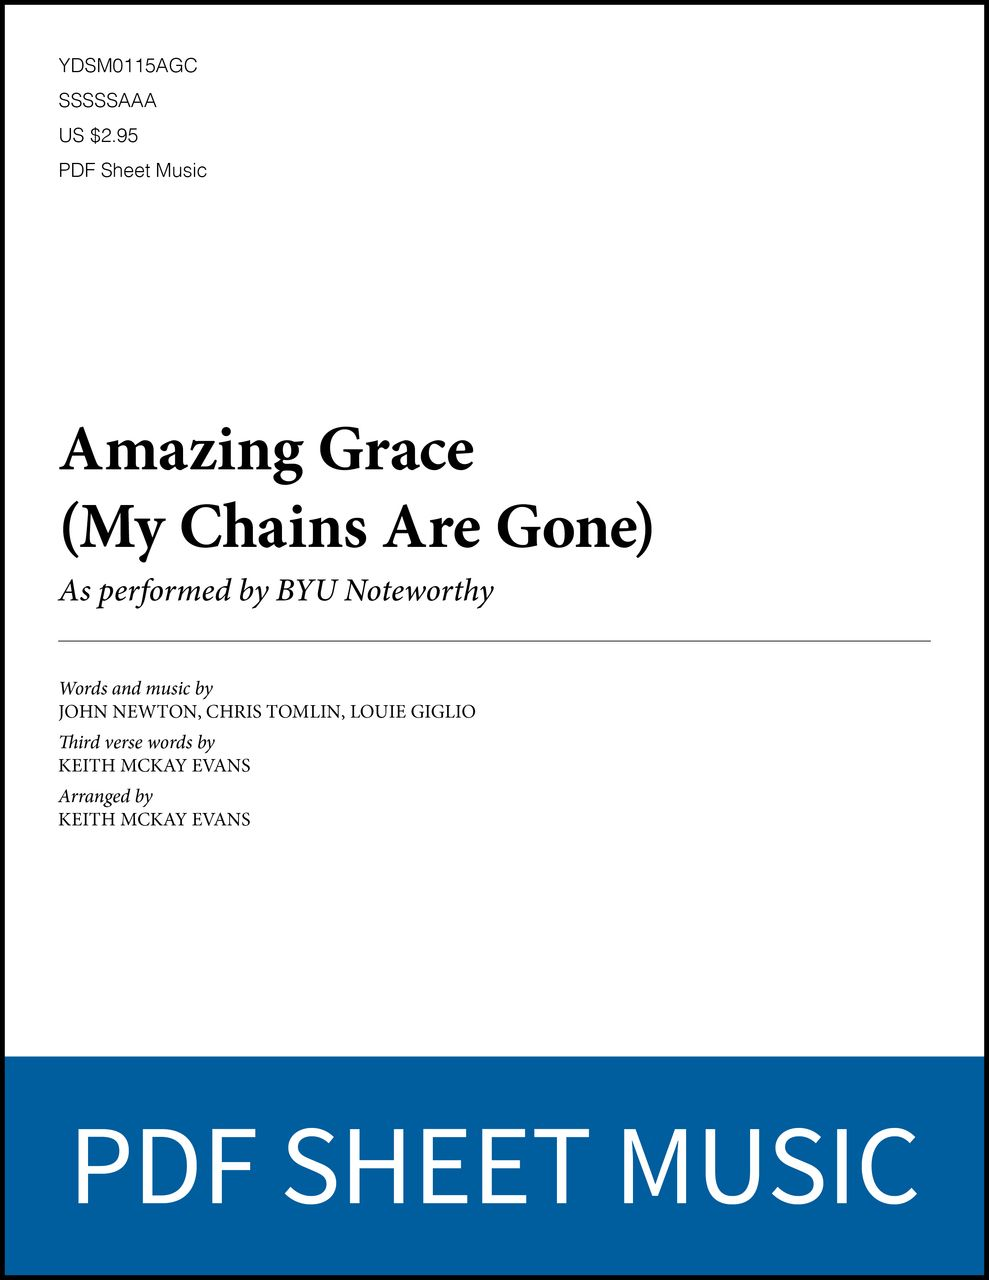 Libros De Cine Pdf Amazing Grace My Chains Are Gone Arr By Keith Mckay Evans